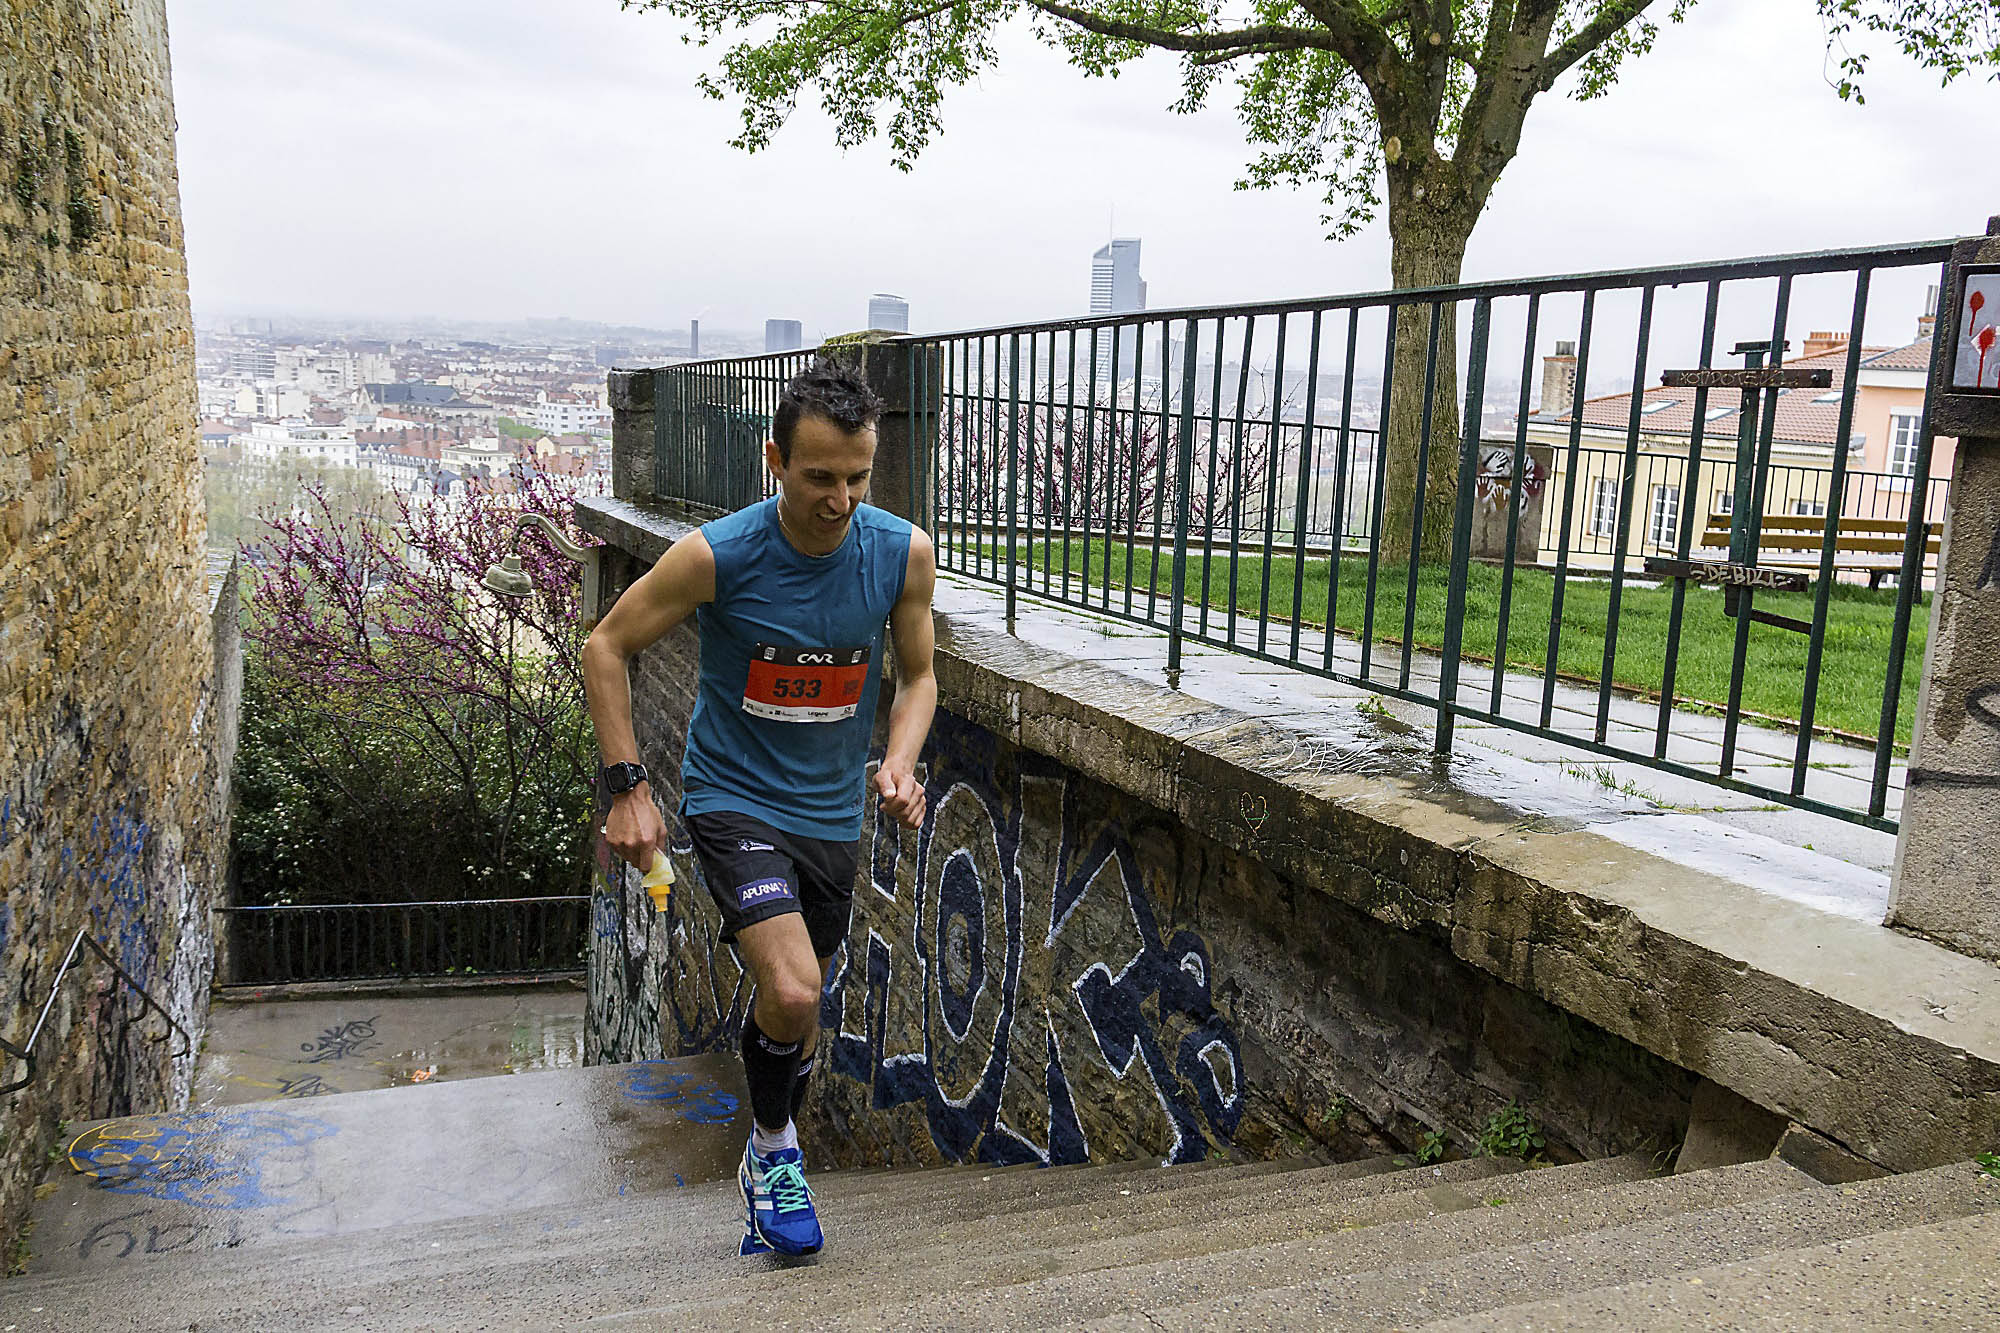 2 Sébastien Spehler photo Goran Mojicevic Passion Trail - RESULTATS ET COMMENTAIRES DU LYON URBAN TRAIL 2017 (par Robert Goin)